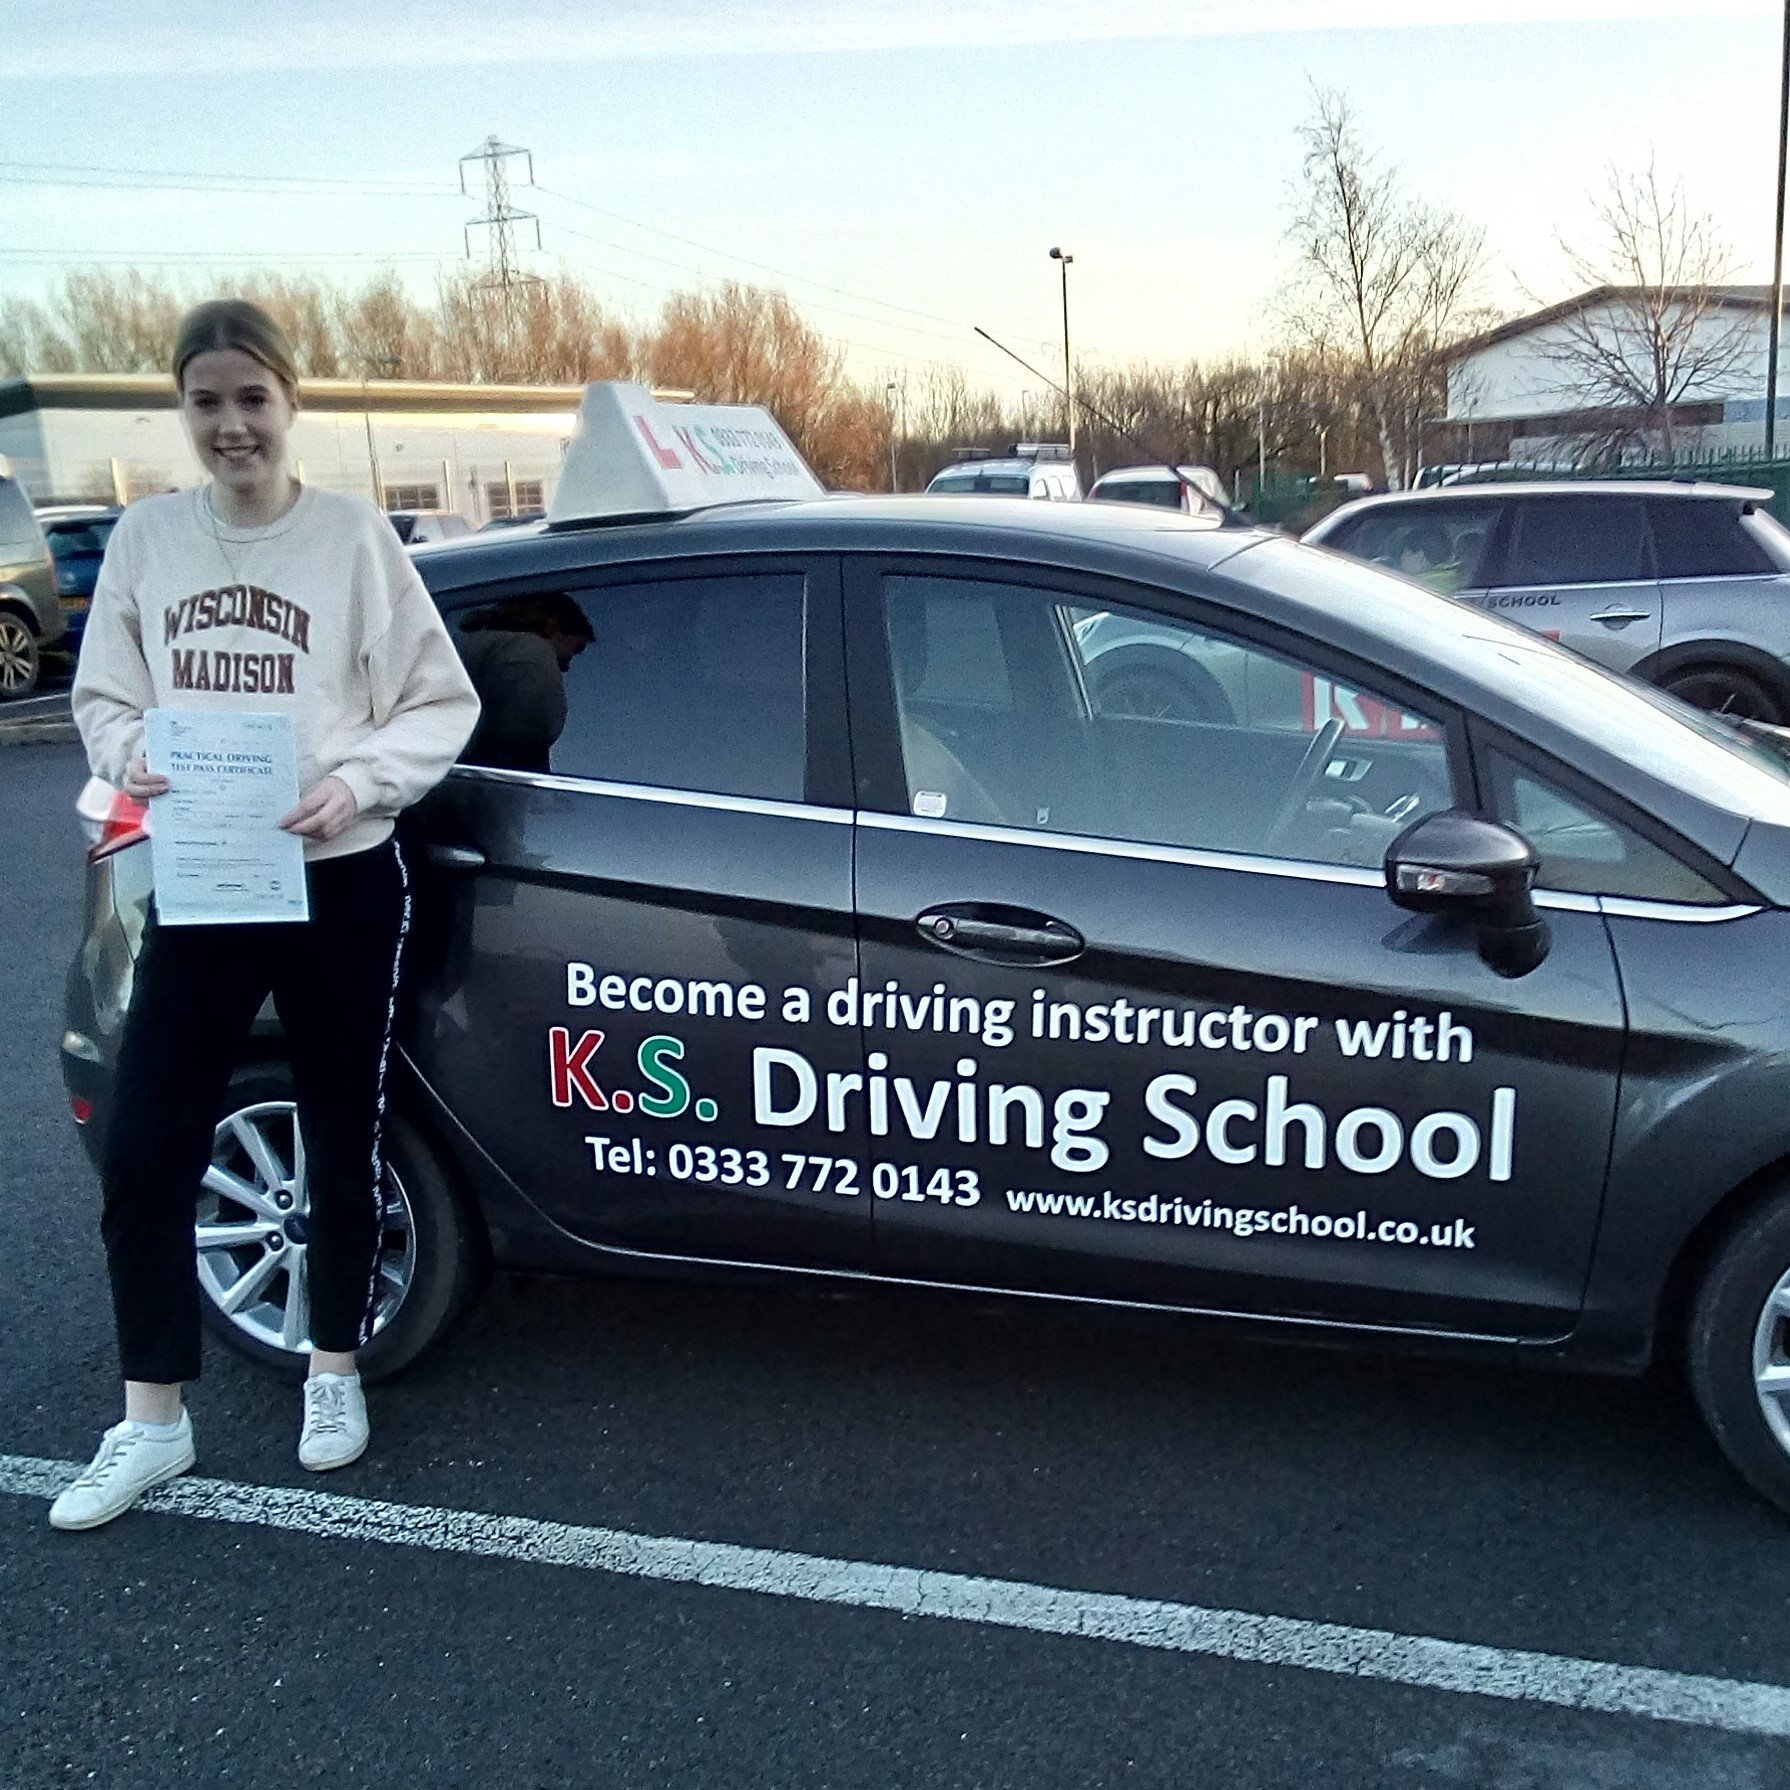 Congratulations on Charlotte Georgie Roberts on passing her test today 9th Jan